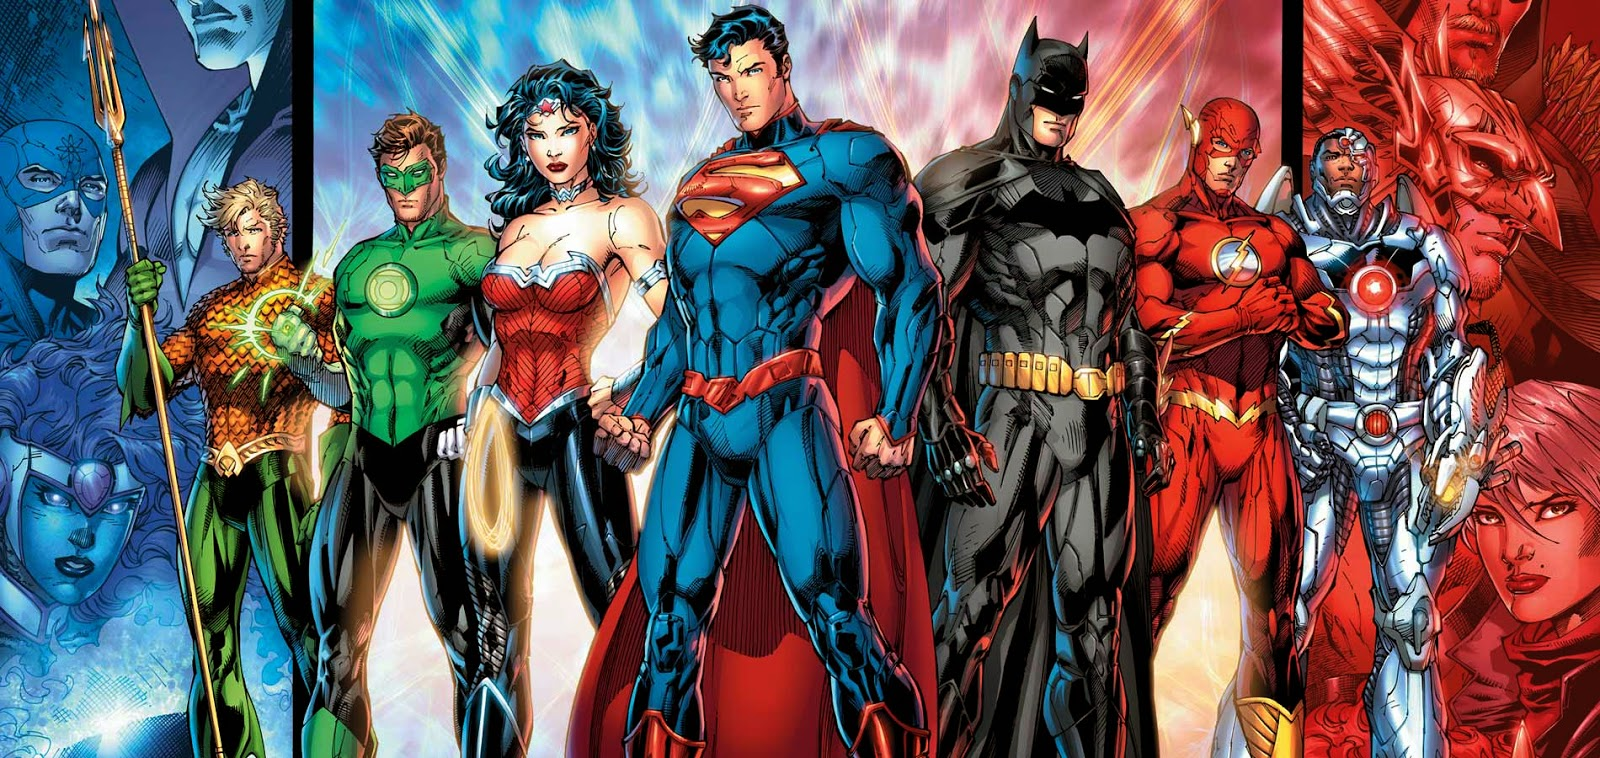 Man of Steel's Zack Snyder to direct upcoming Justice League movie